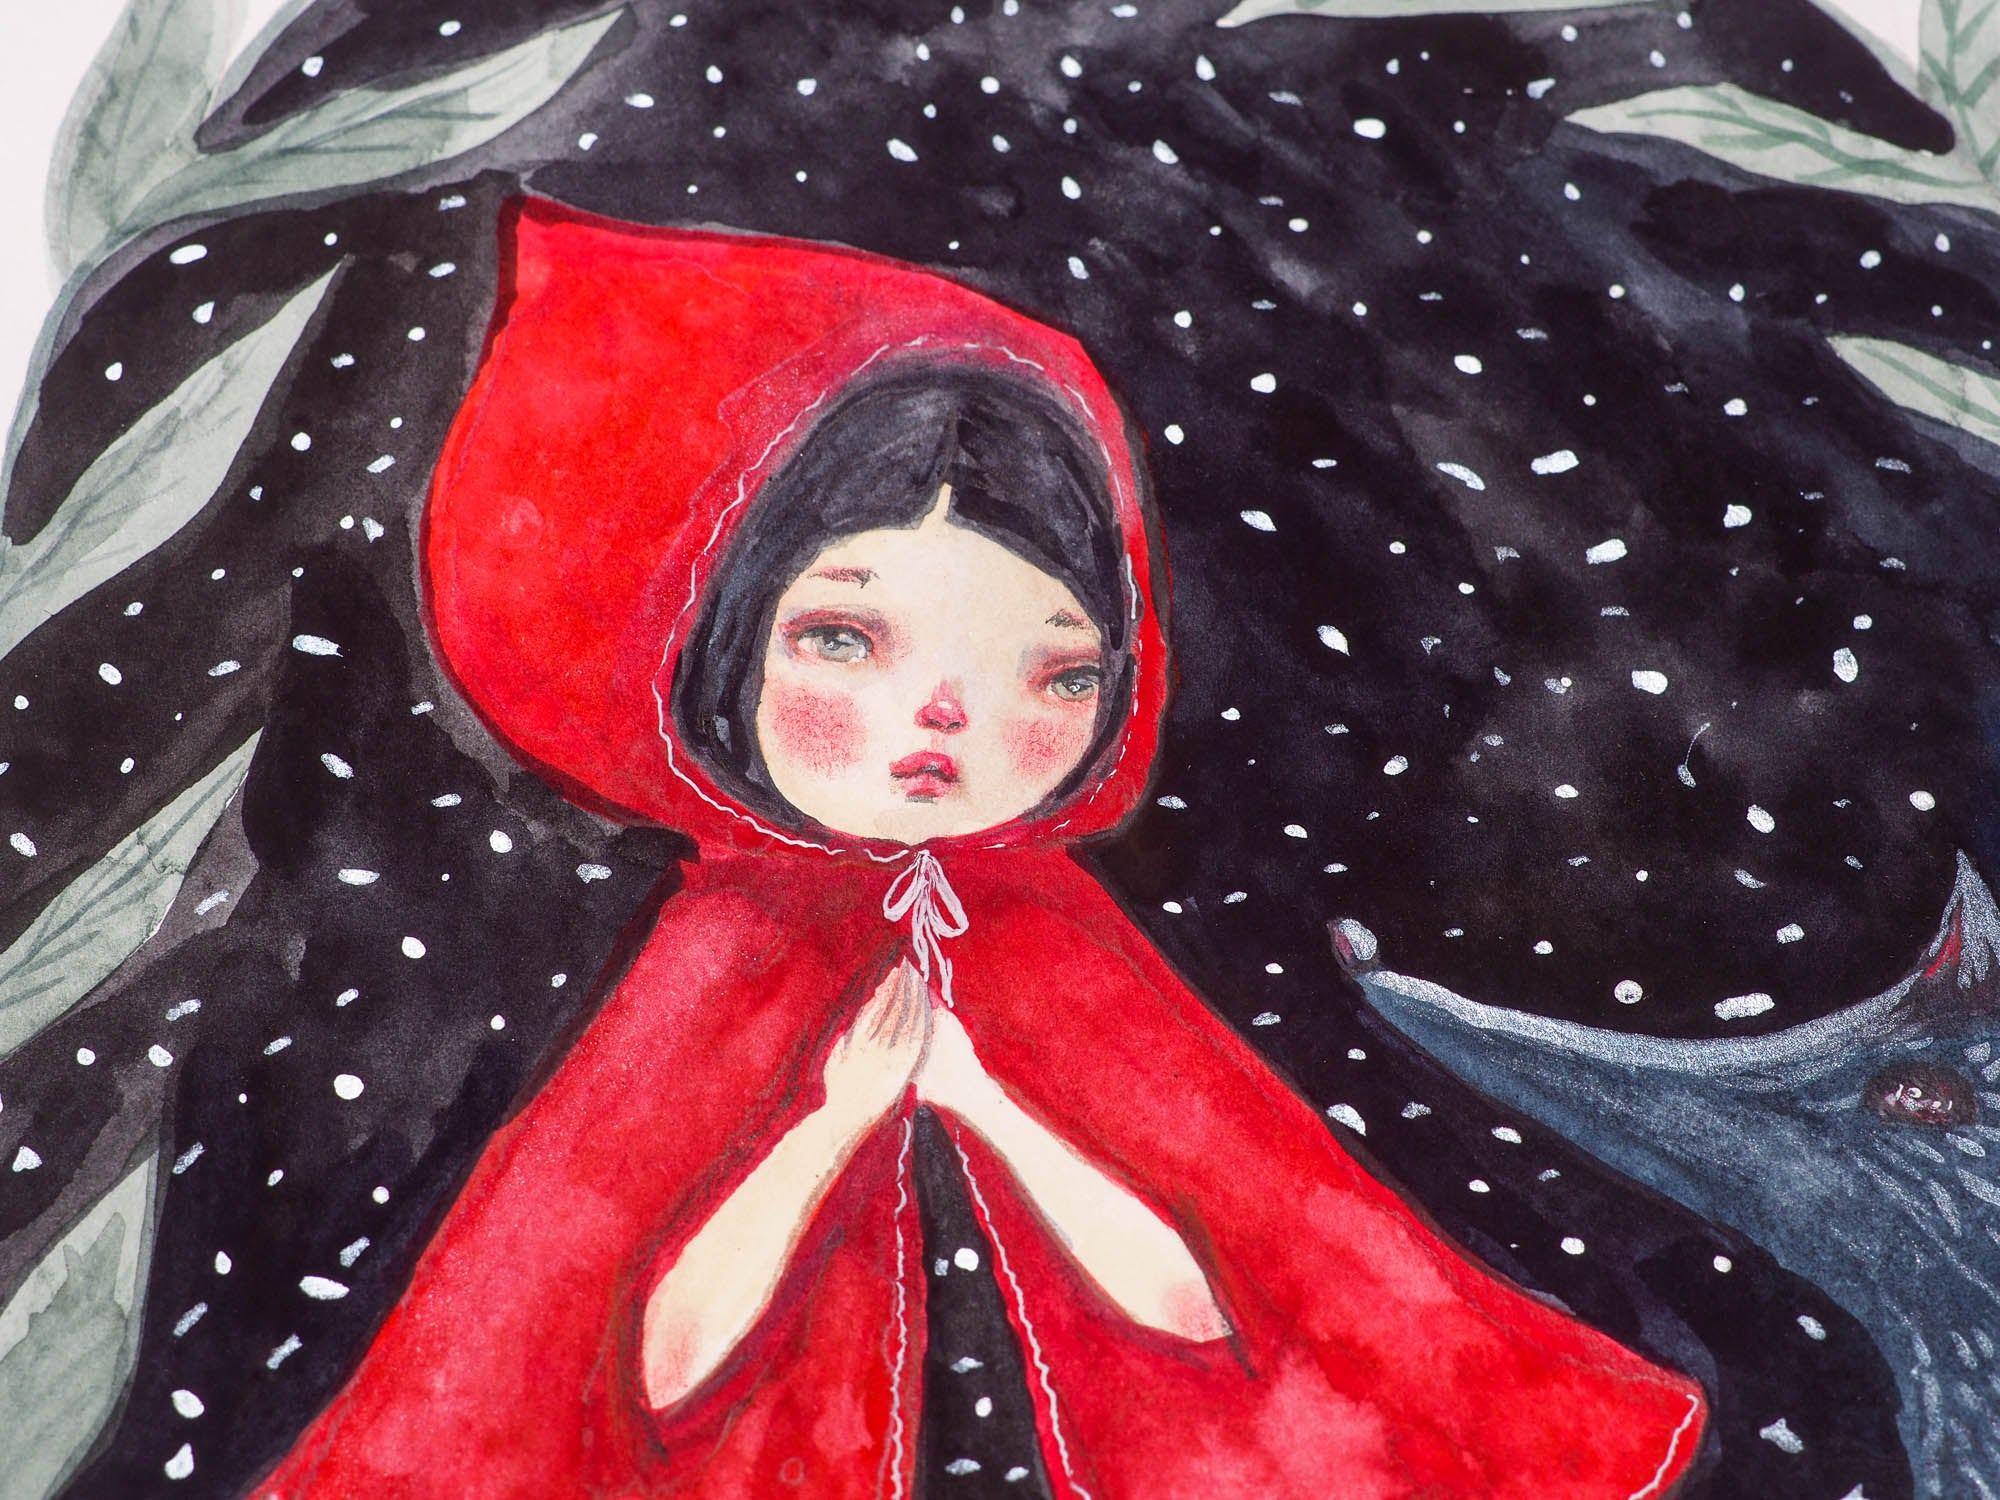 Danita loves painting Little Red riding Hood and the Wolf. This time, it's a 8 x 8 watercolor original, where I painted the wold in gray and silver paint and Little Red Riding Hood is wearing a bright red cape with intricate watercolor shades and silverly thread details on her cape.